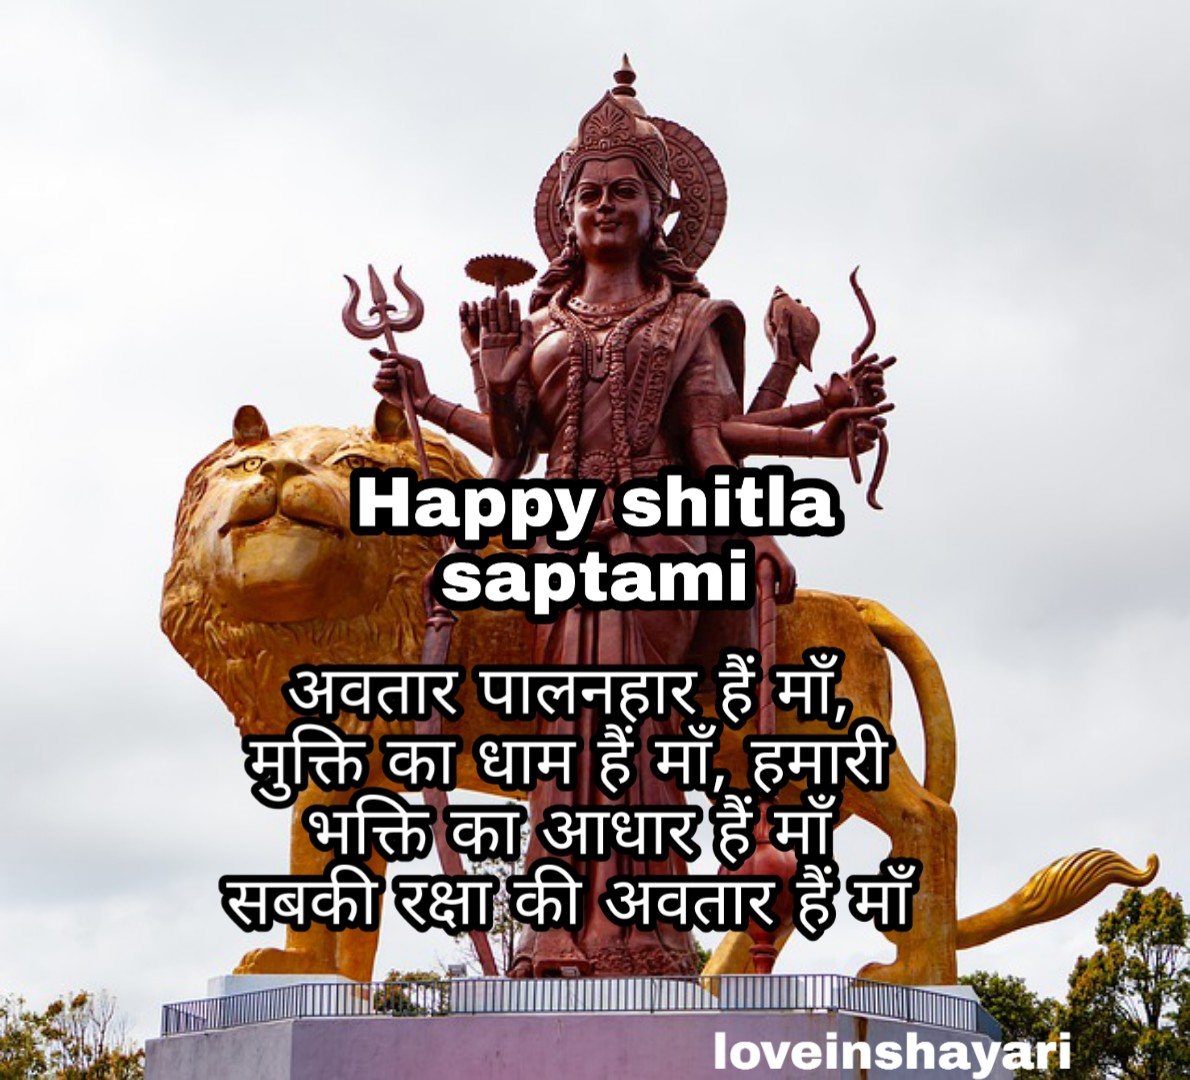 Photo of Shitla saptami status shayari in hindi